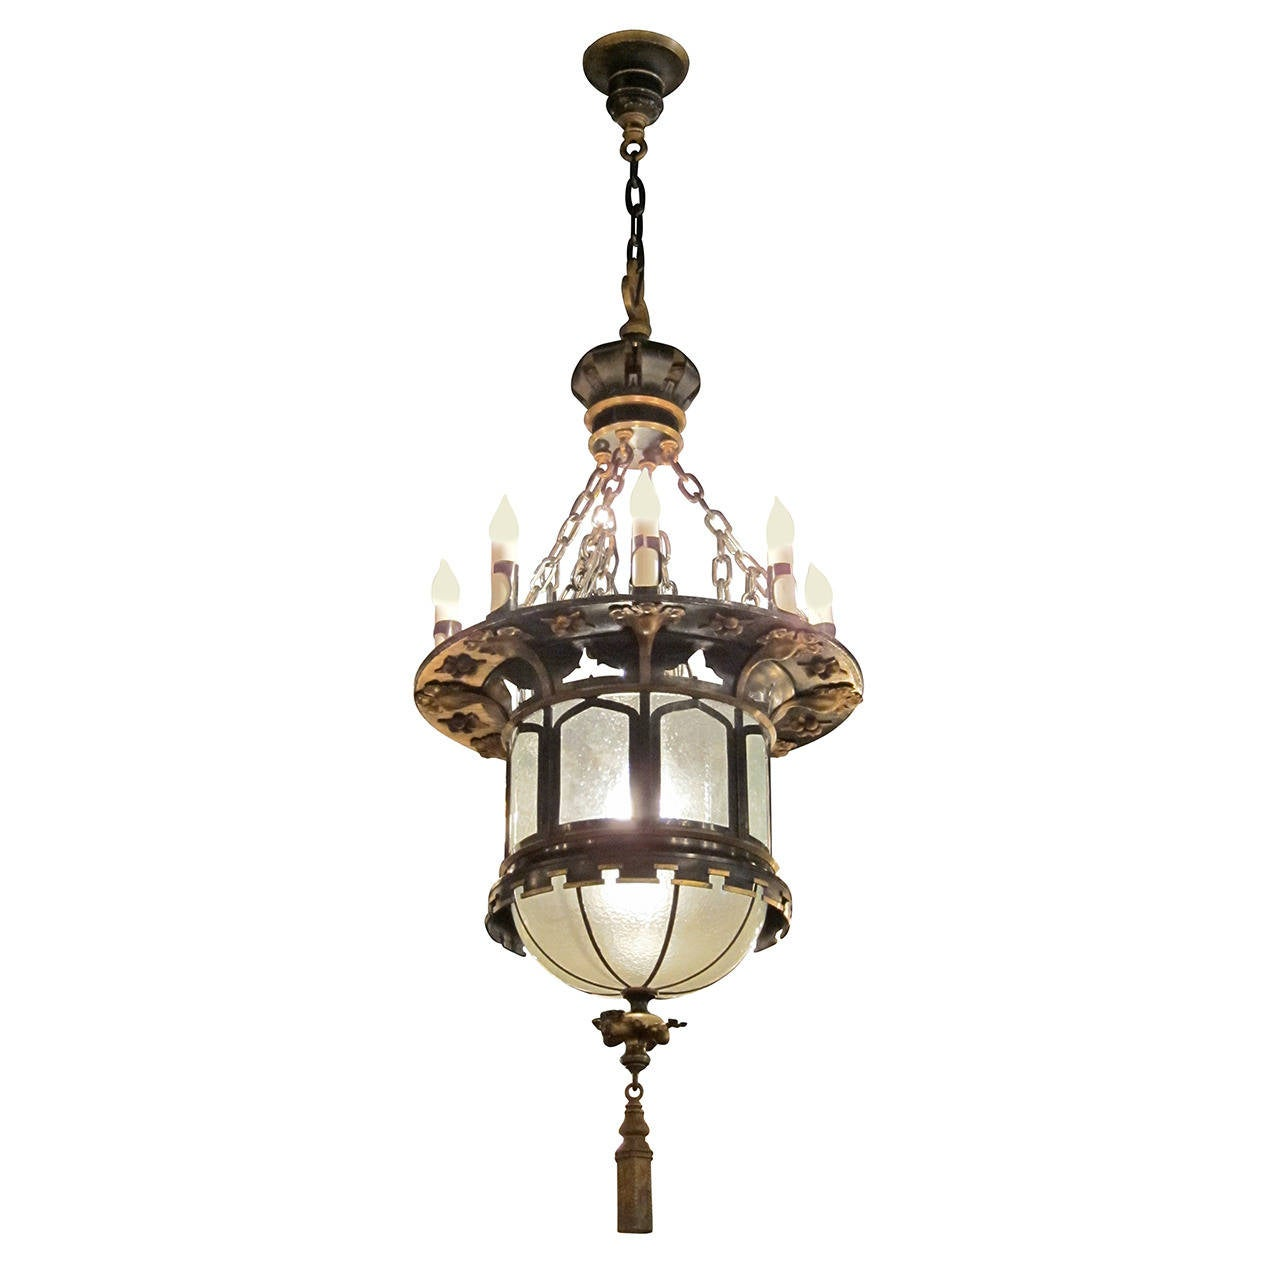 Items Similar To Lighting Rustic Chandelier Vintage 1920 S: 1920s French Gothic Tudor Pendant Light With Slumped Glass